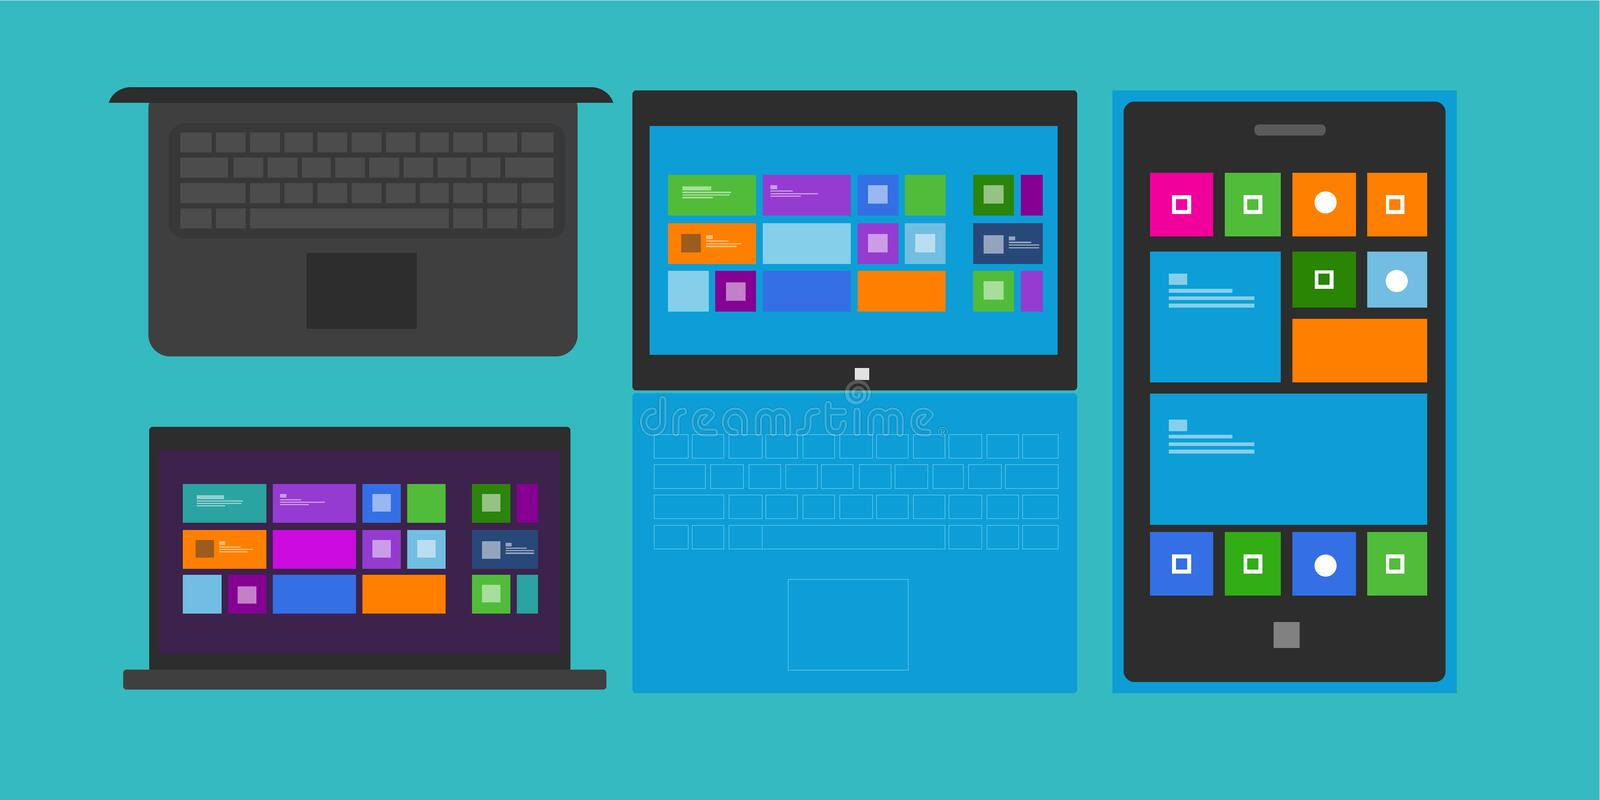 Set of computing device. S with tiled user interface in blue, laptop from top, front, tablet and phone vector illustration